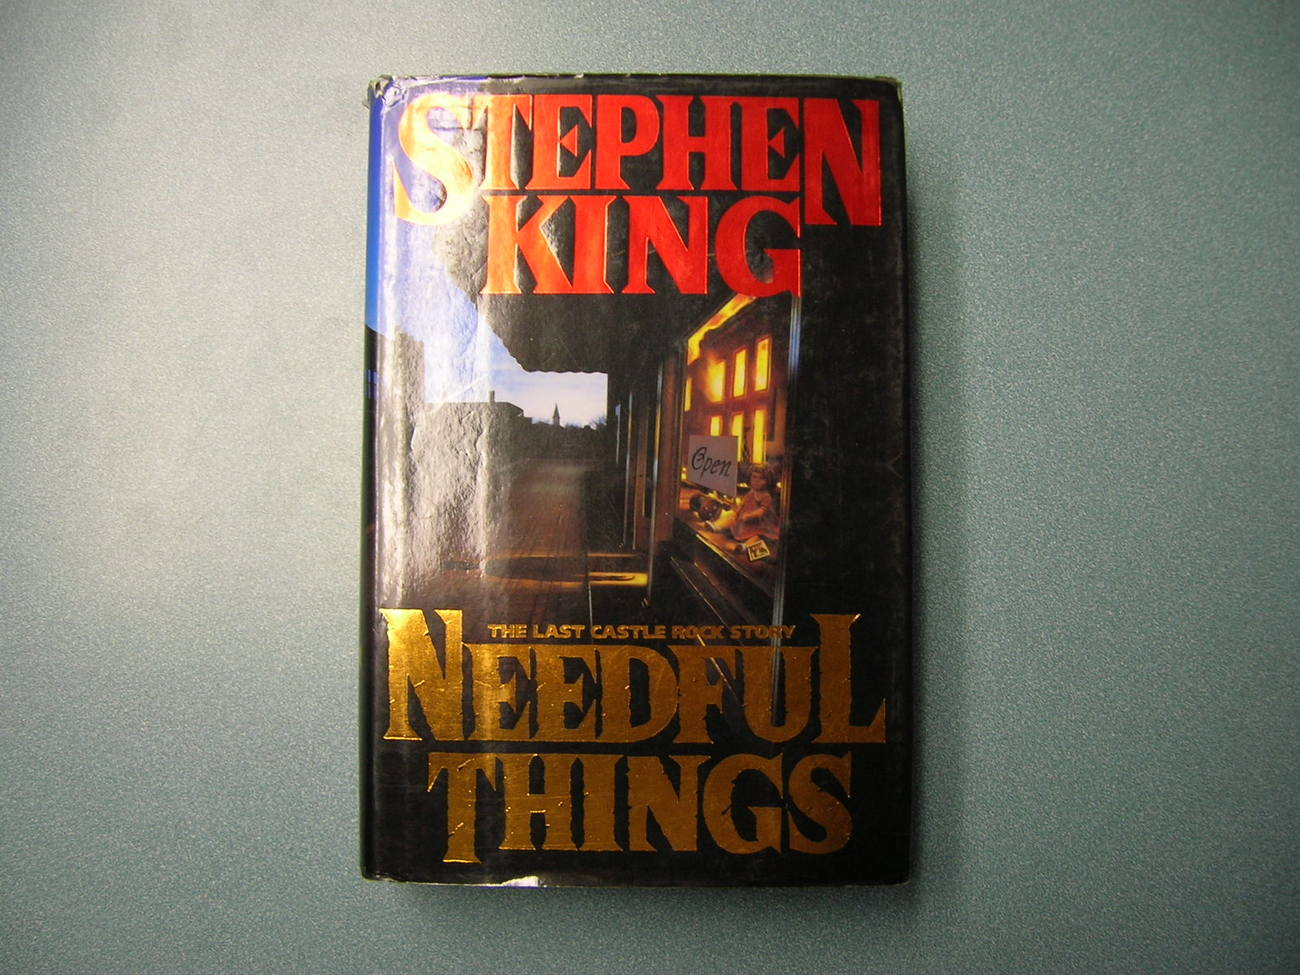 Stephen King - NEEDFUL THINGS - First Edition